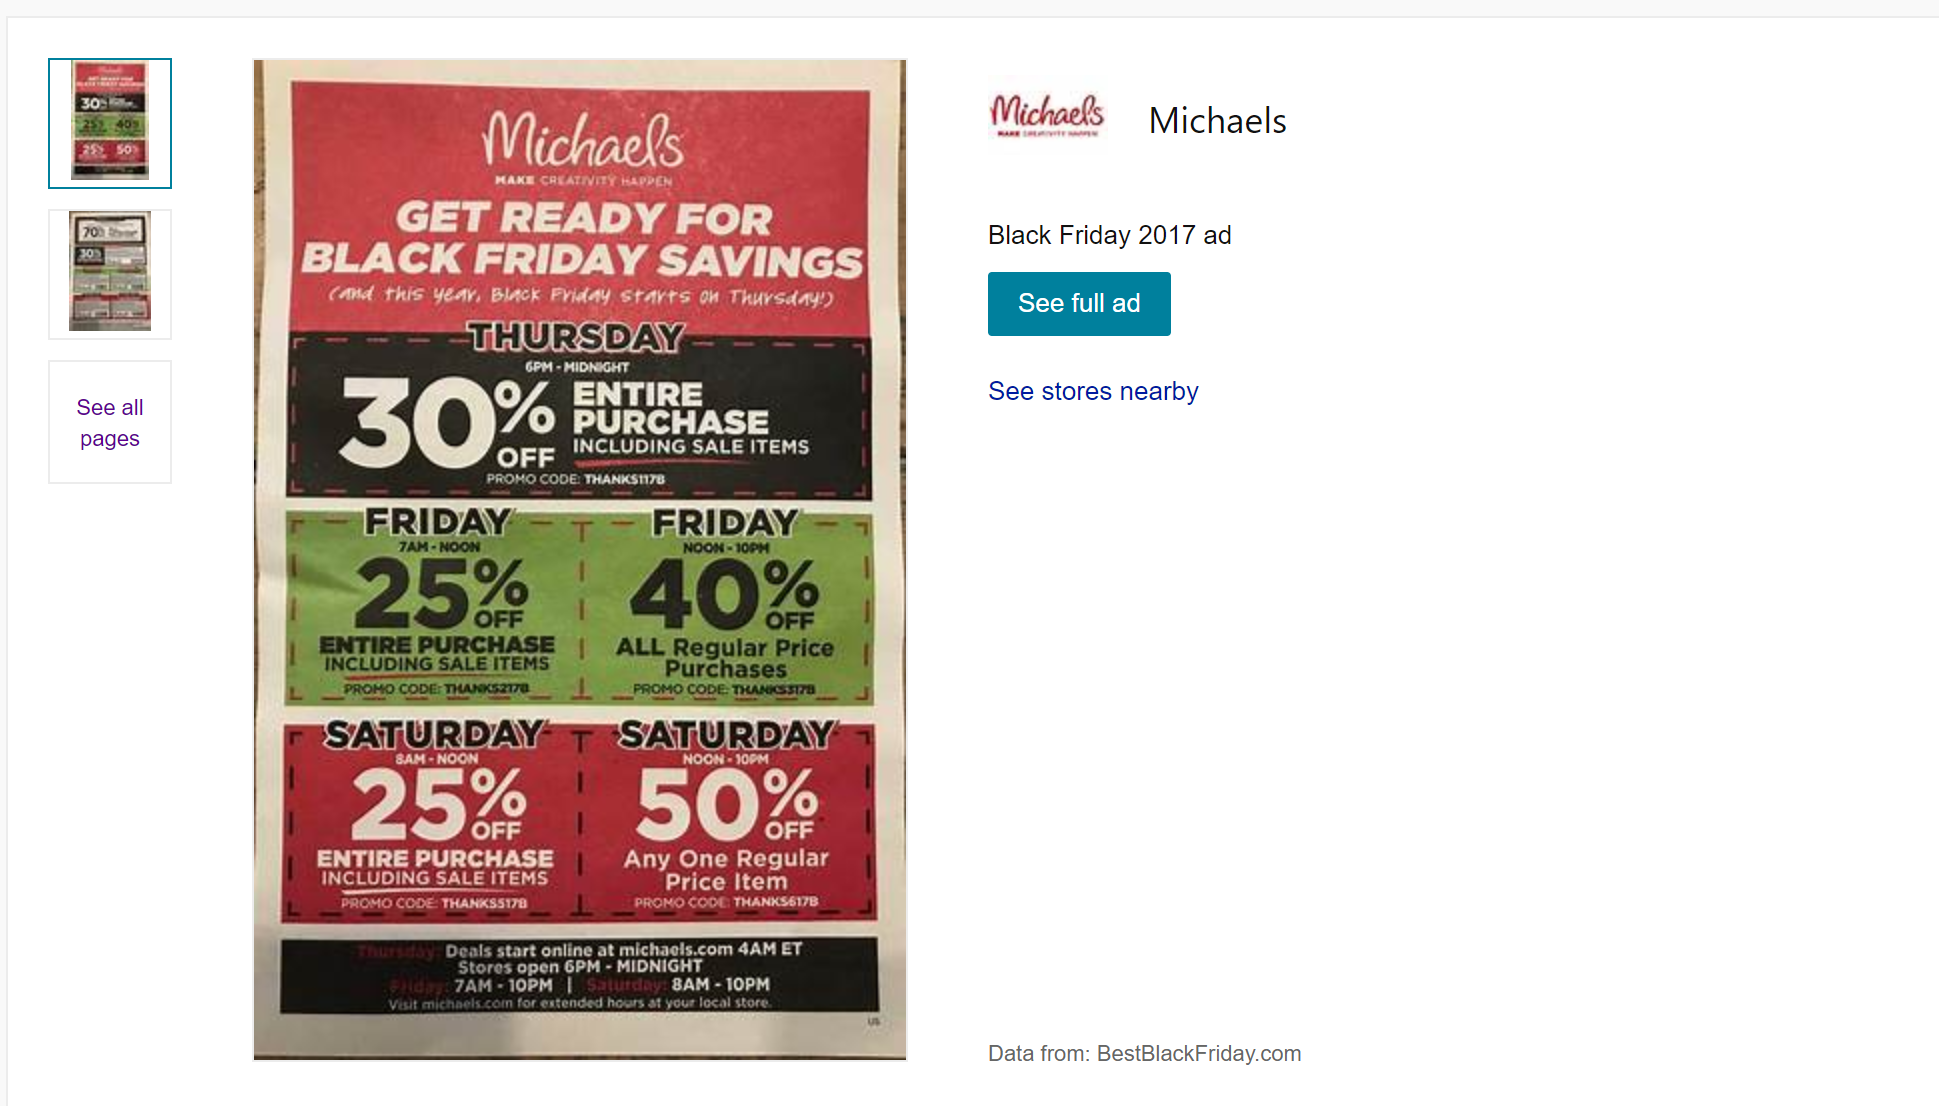 black friday michaels bing.png